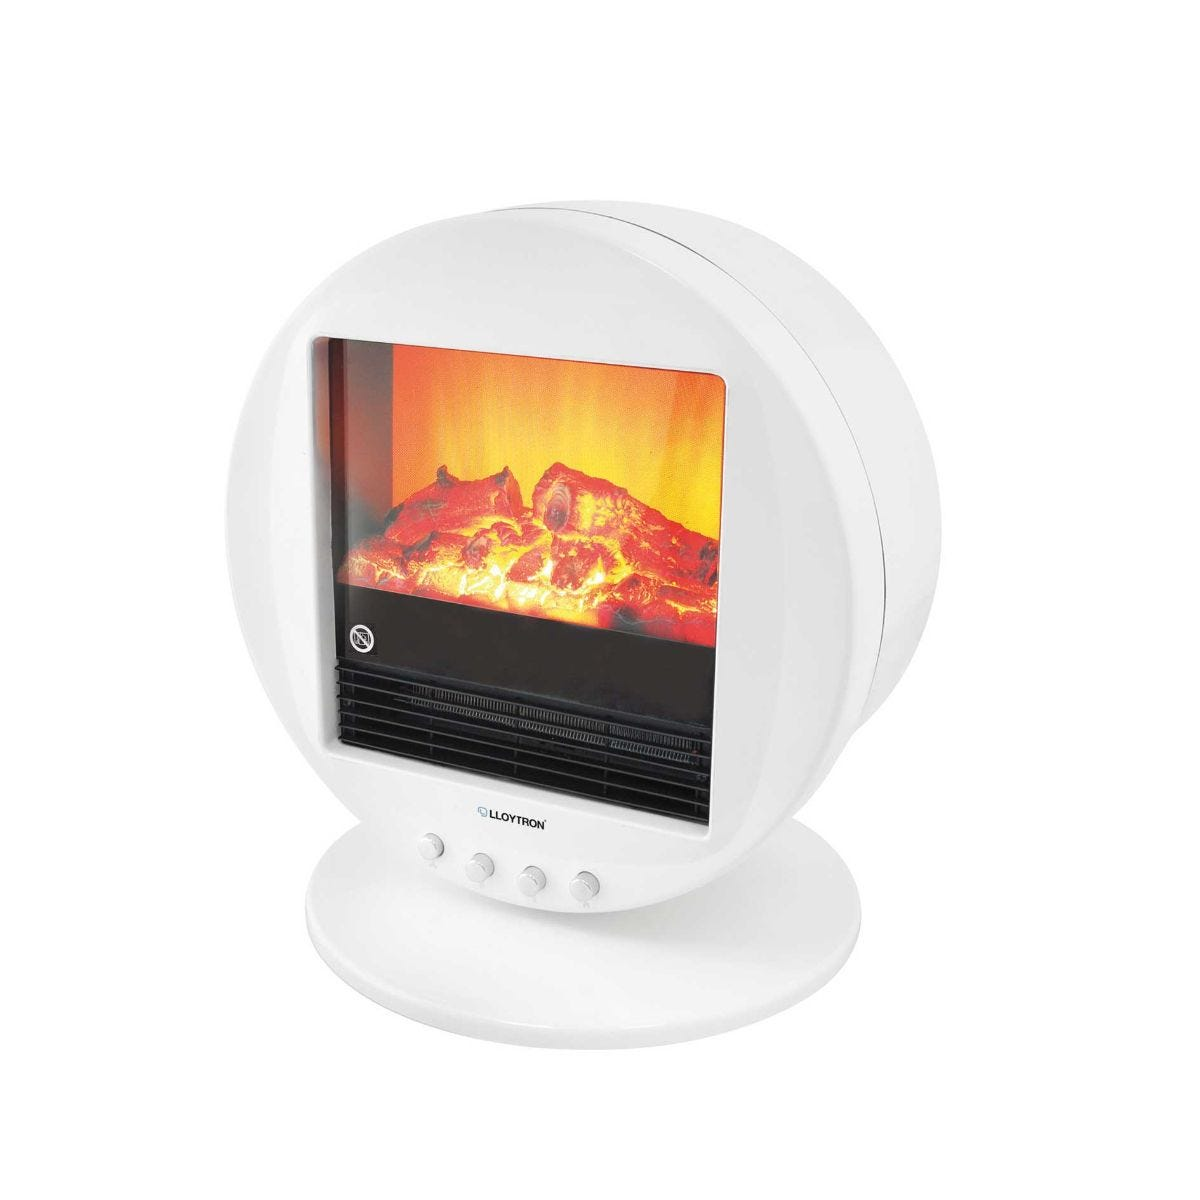 Image of 2000w Living Flame Oscillating Electric Fire, White